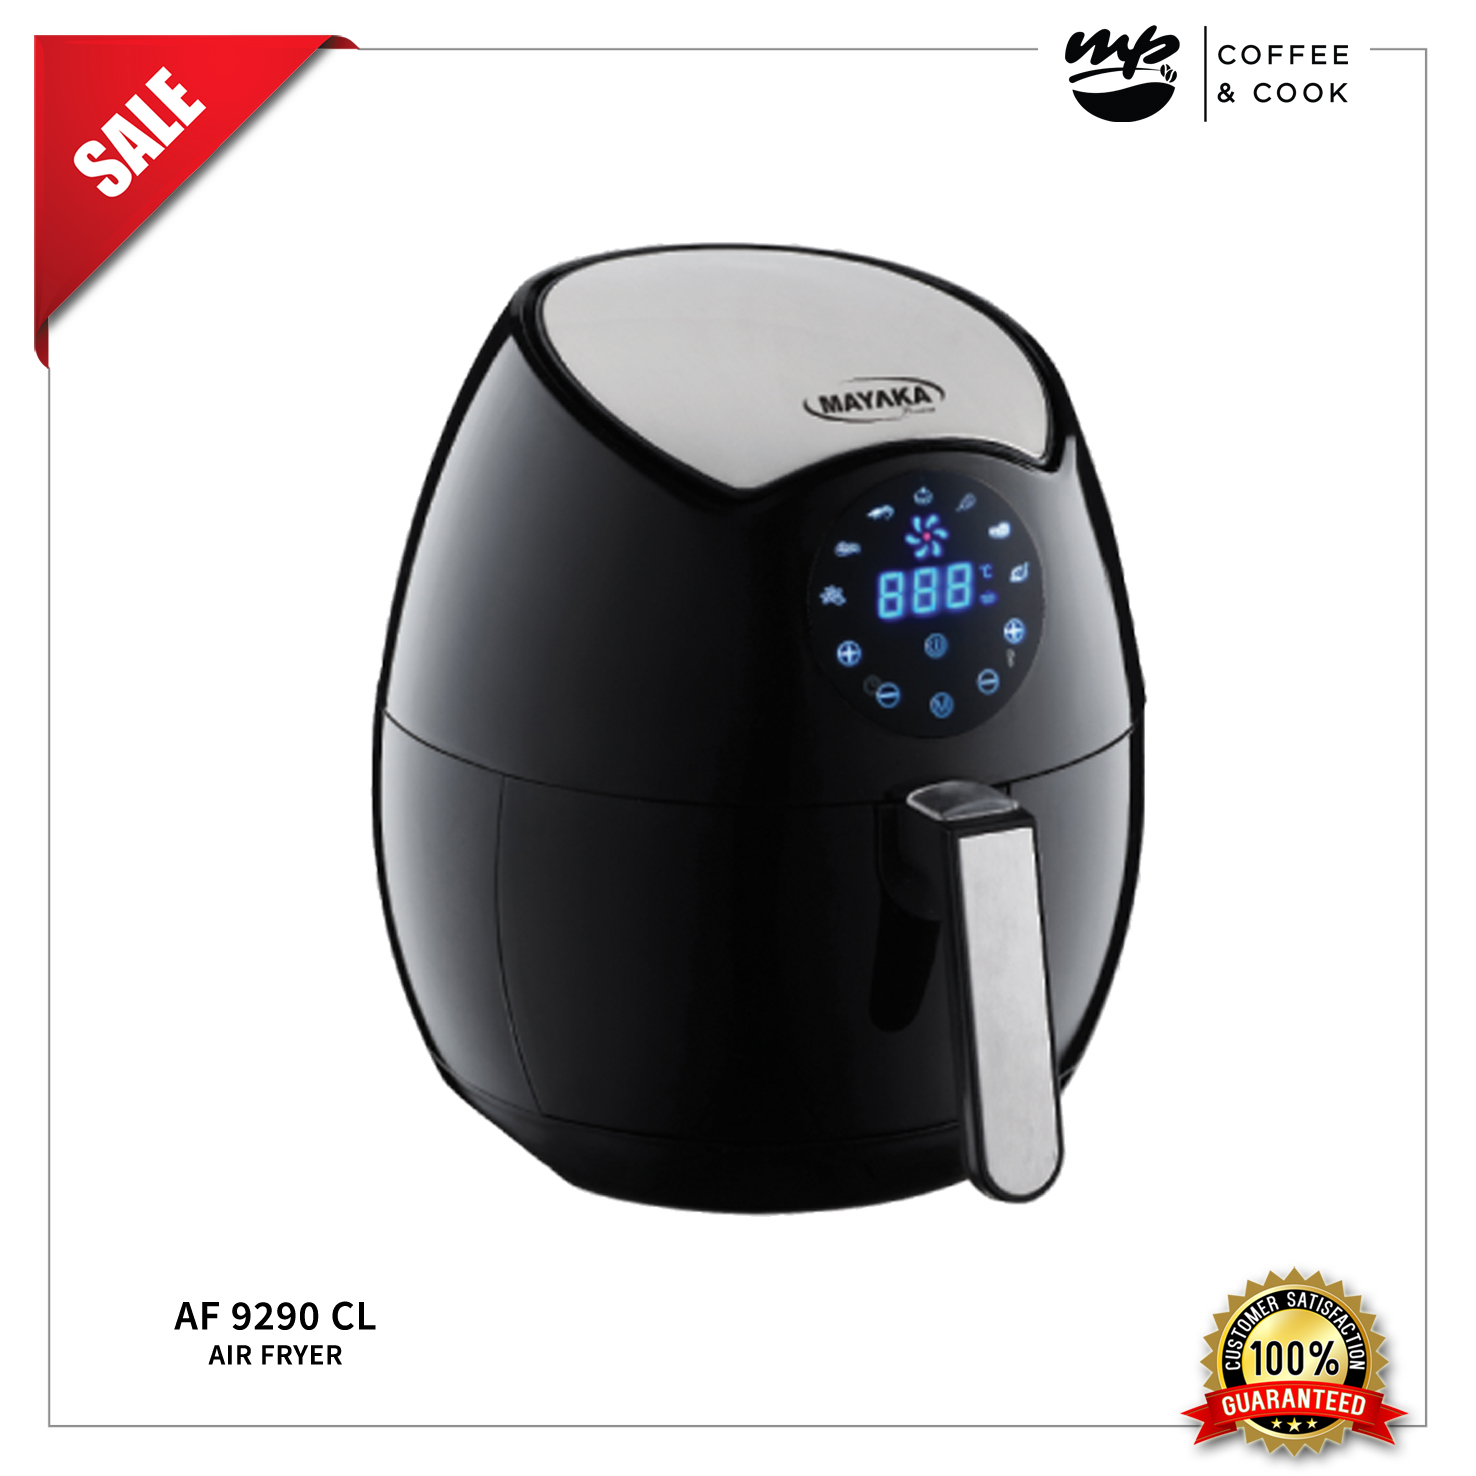 AIR FRYER AF 9290 CL – 1